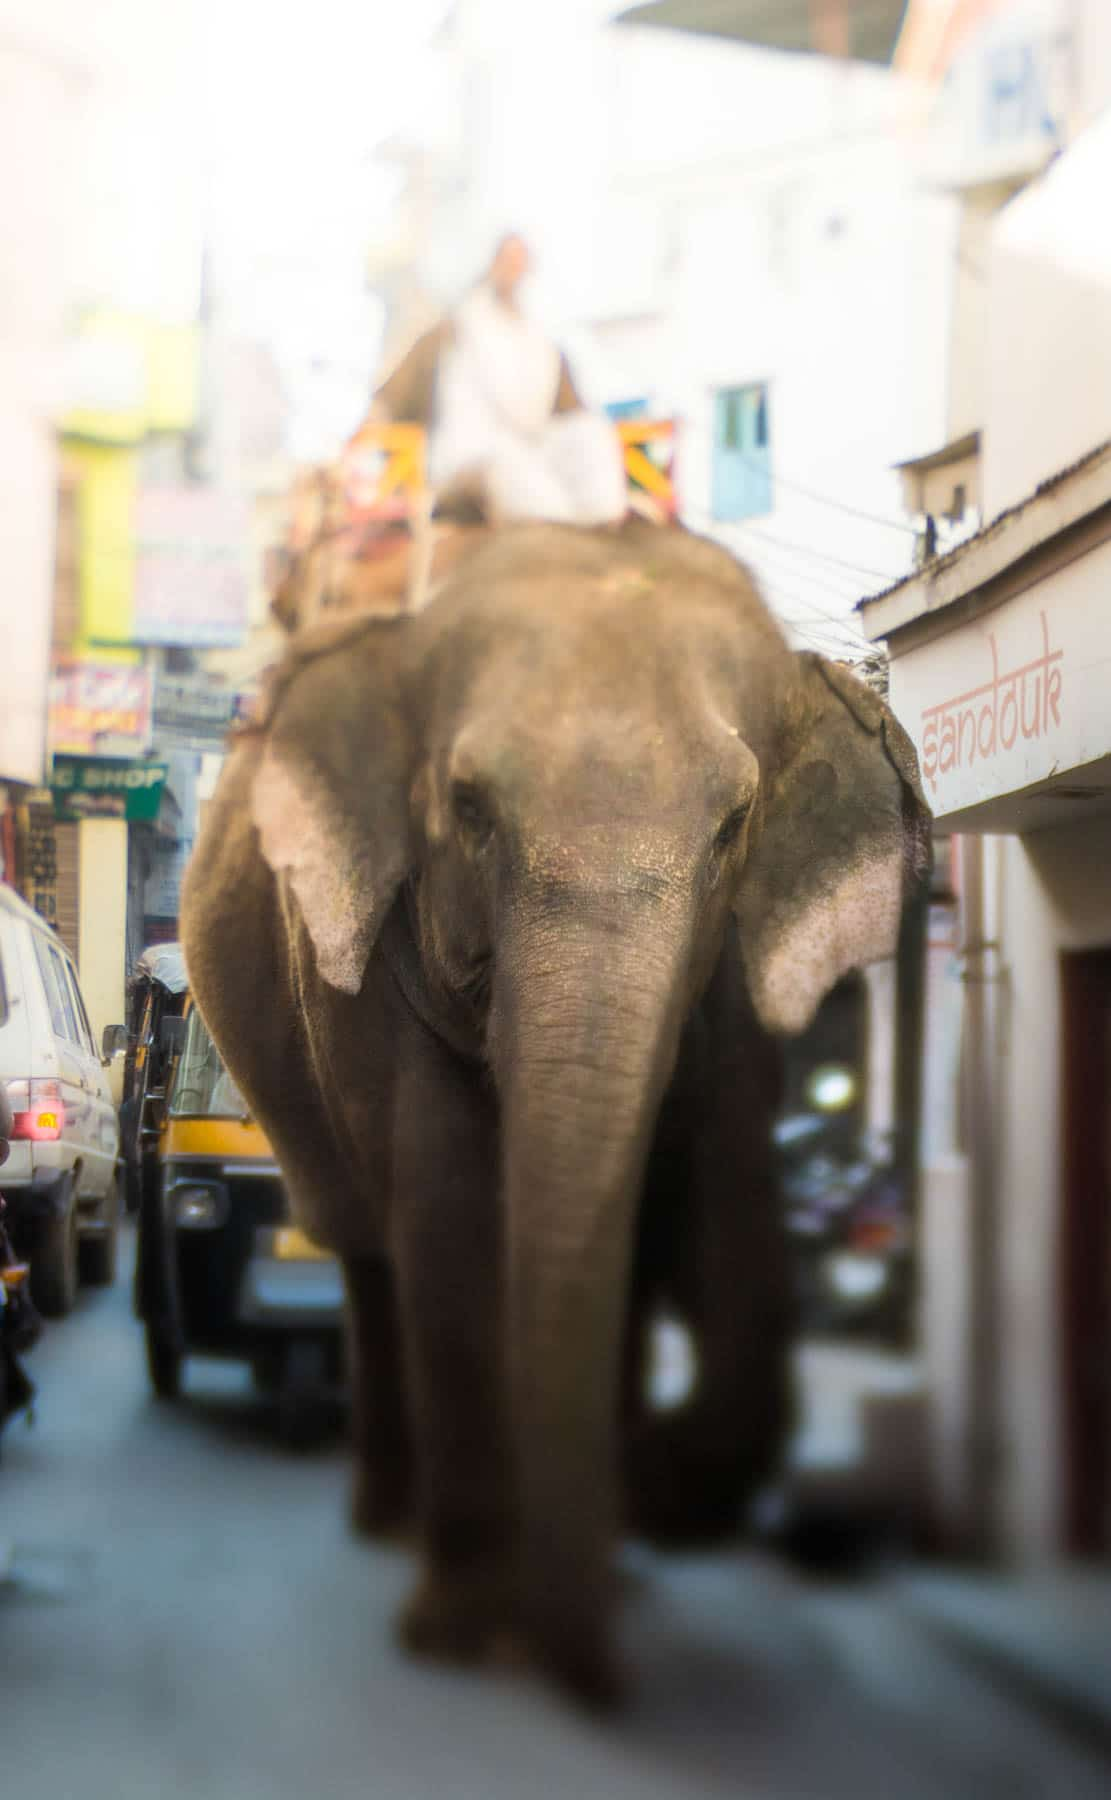 Lensbaby Edge 50 Optic review - Elephant walking the streets of Udaipur, India - Lost With Purpose